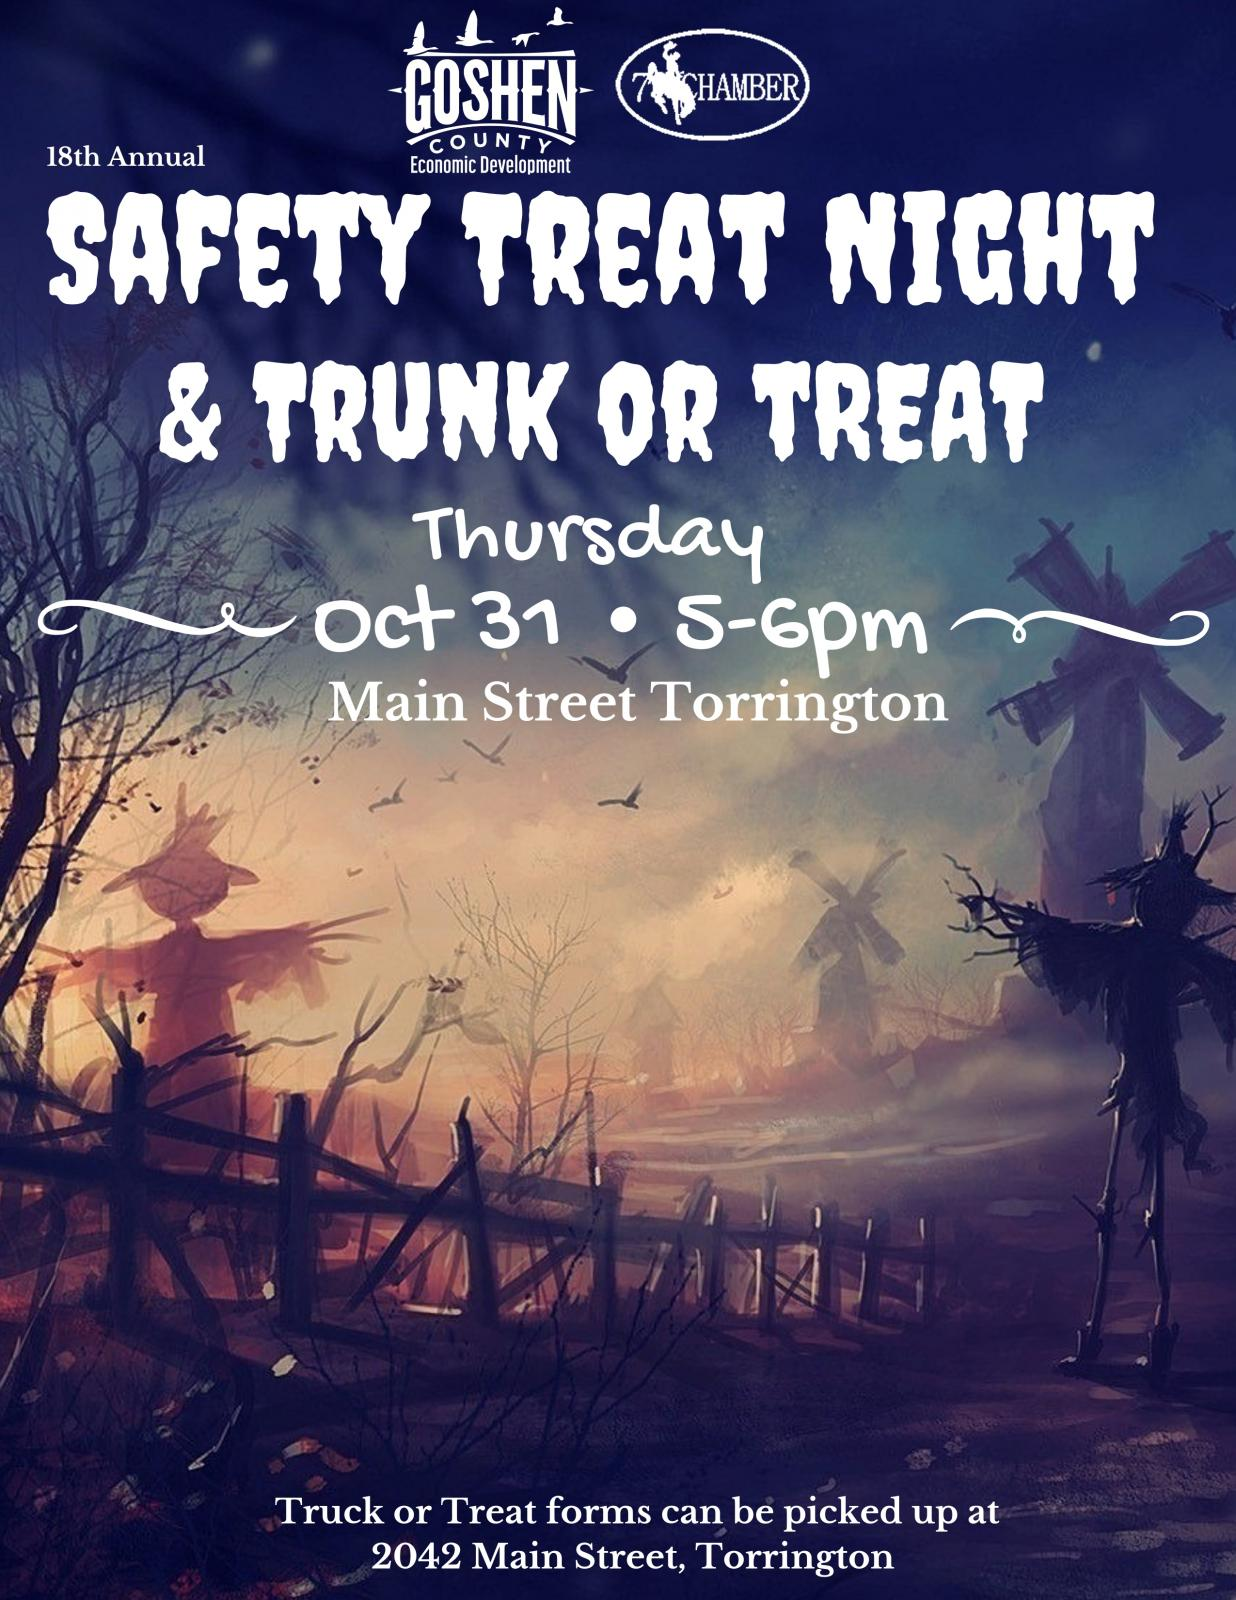 Event Promo Photo For Safety Treat Night & Trunk or Treat